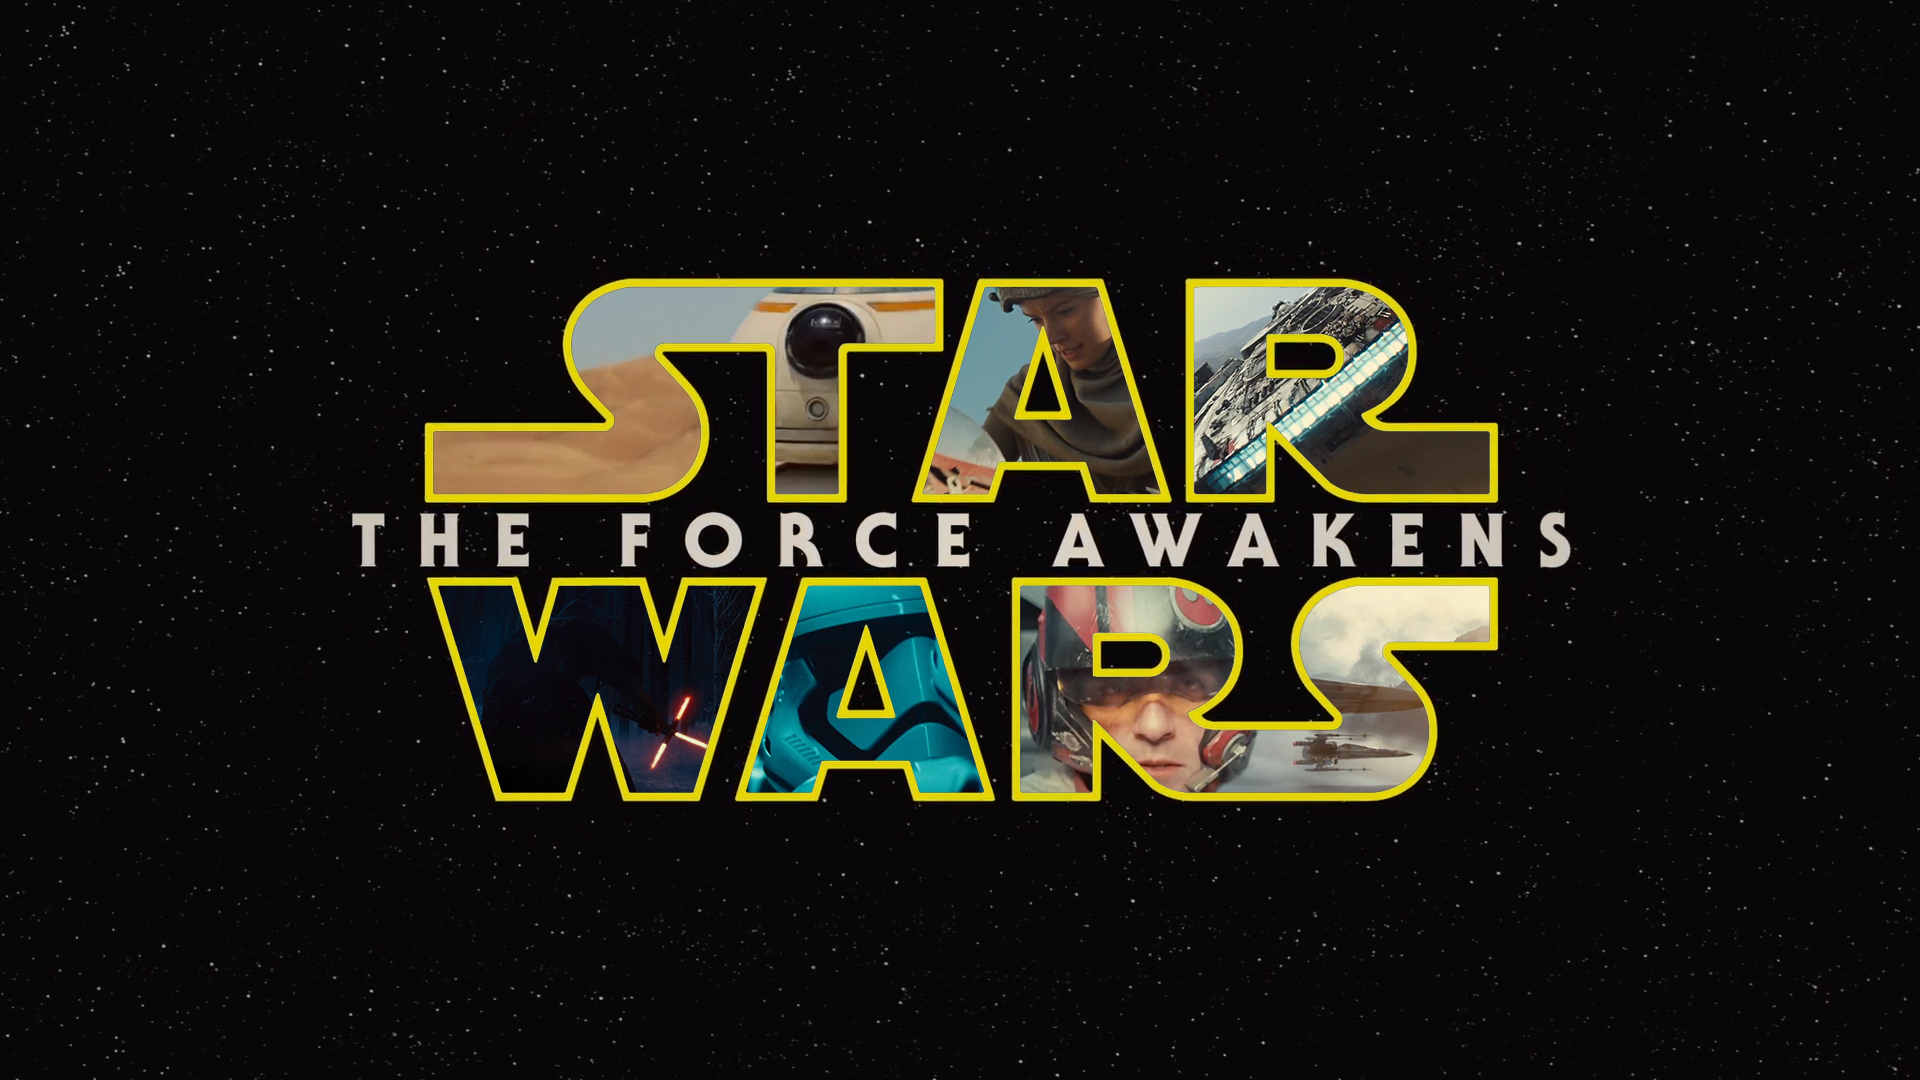 Star Wars The Force Awakens Hd Wallpaper Sci Fi And Fantasy Network